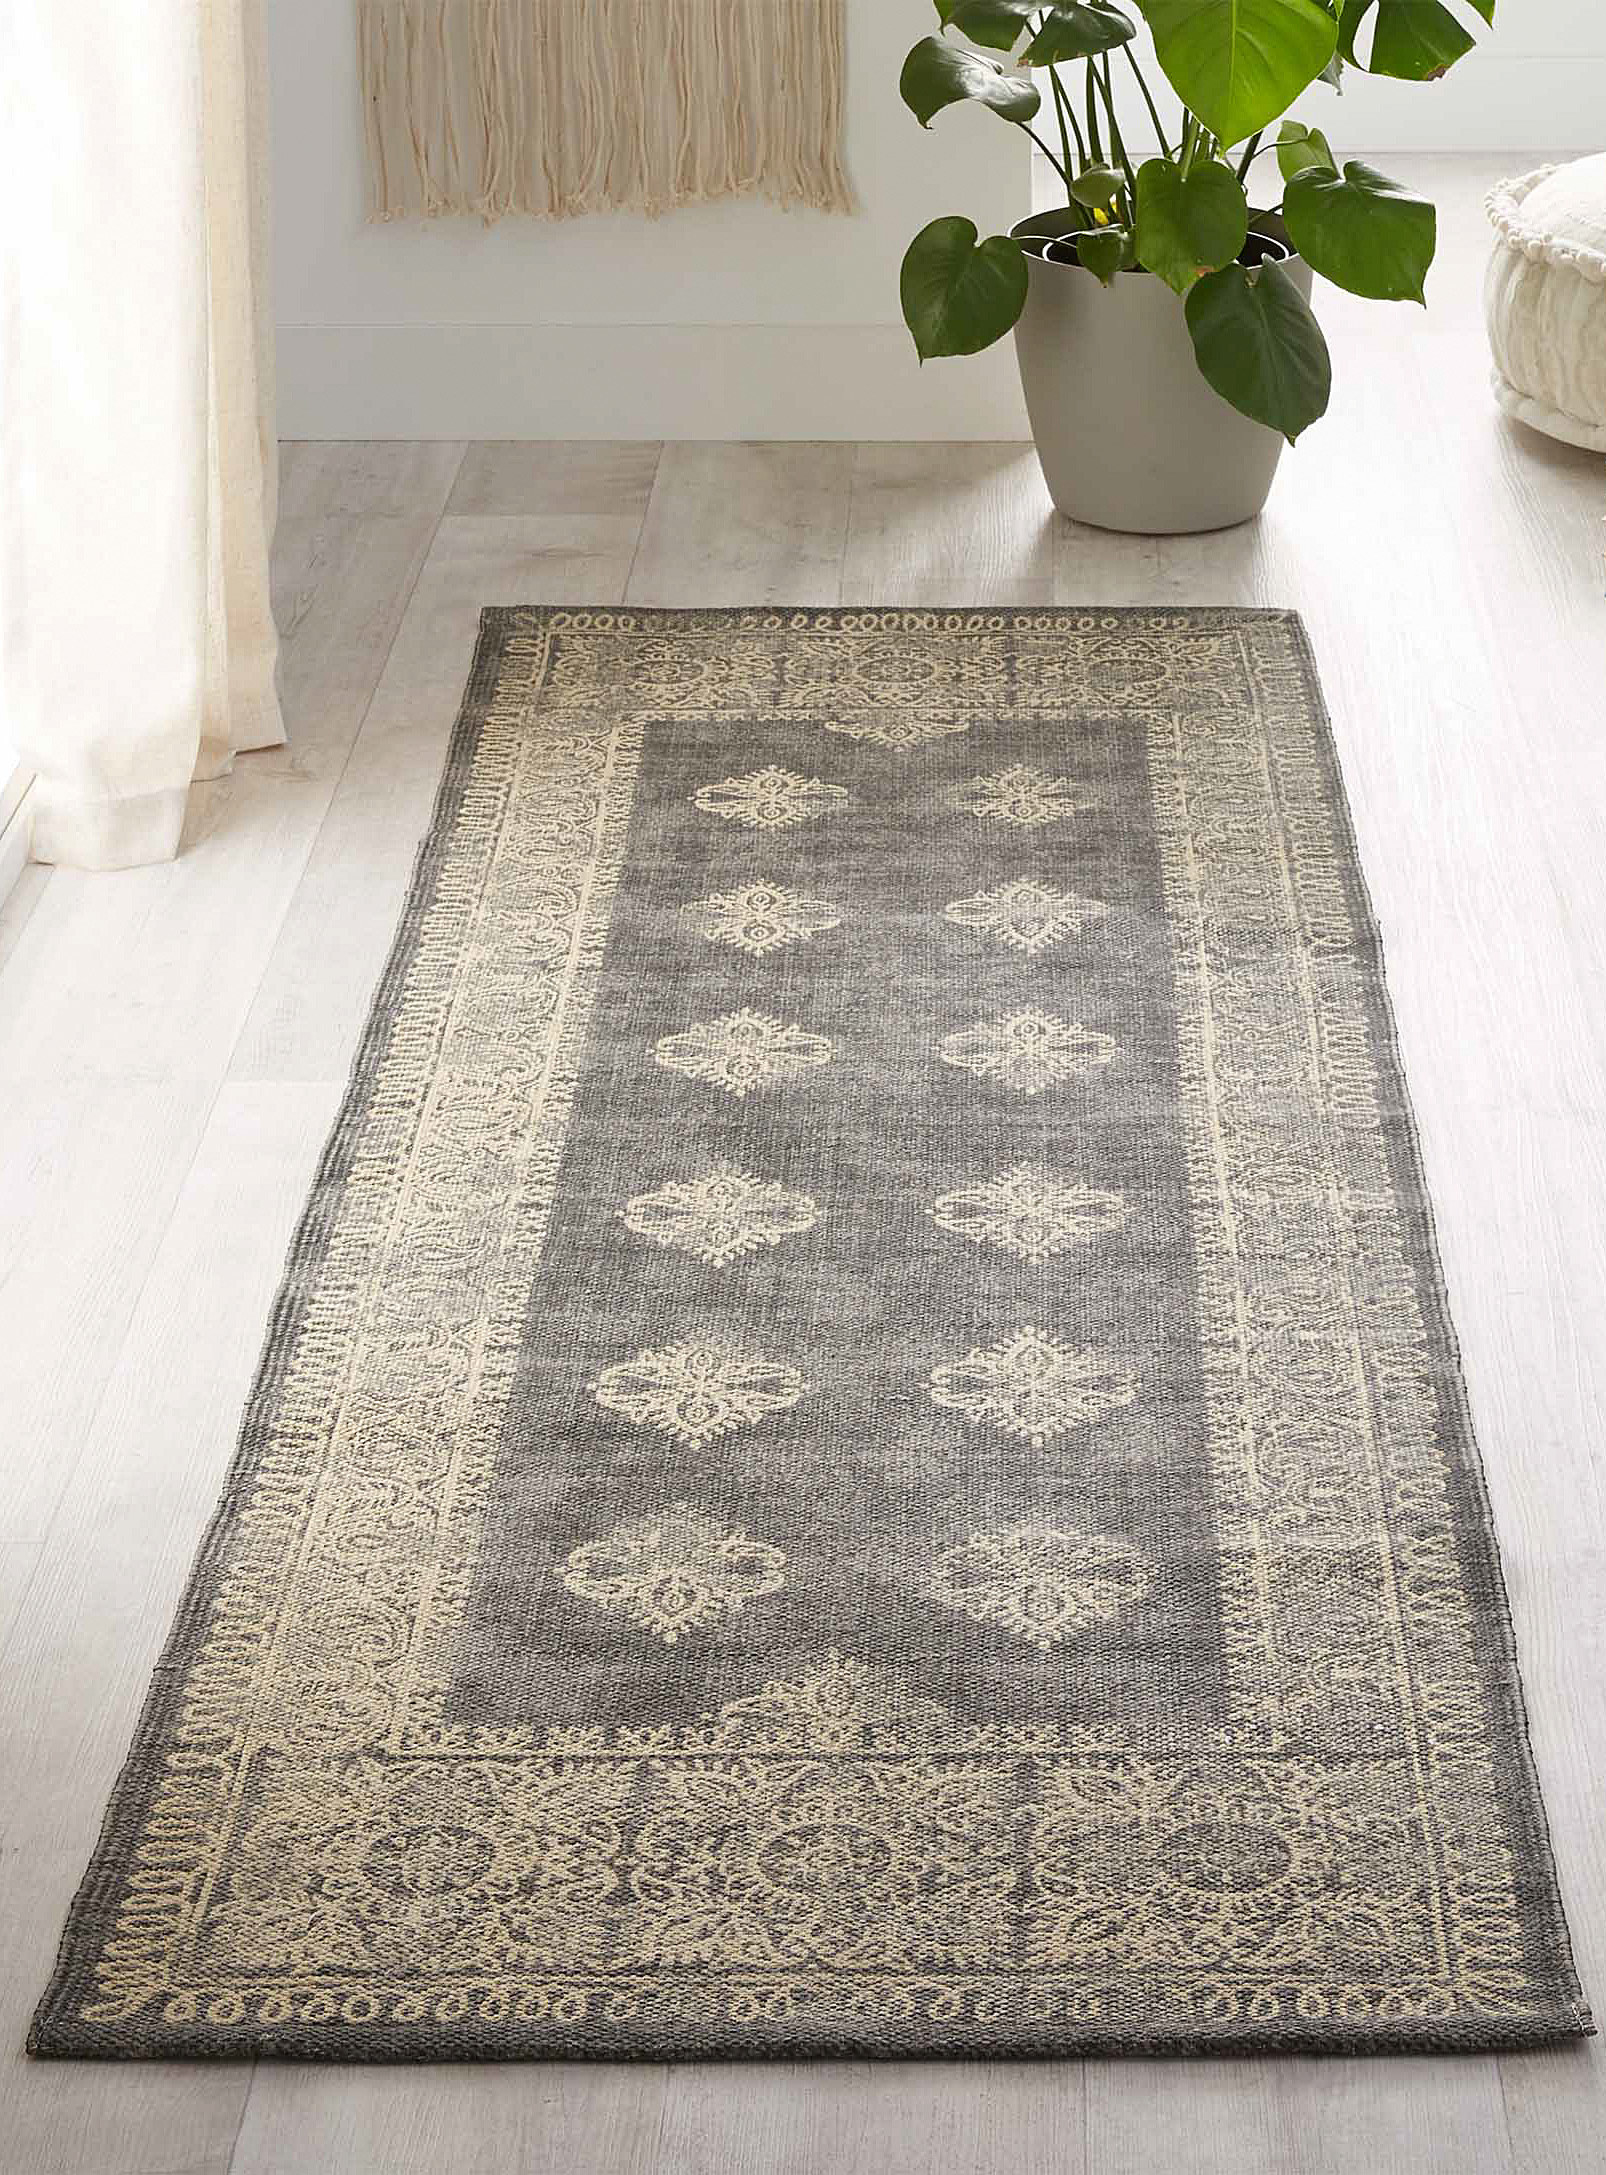 The carpet runner next to a plant